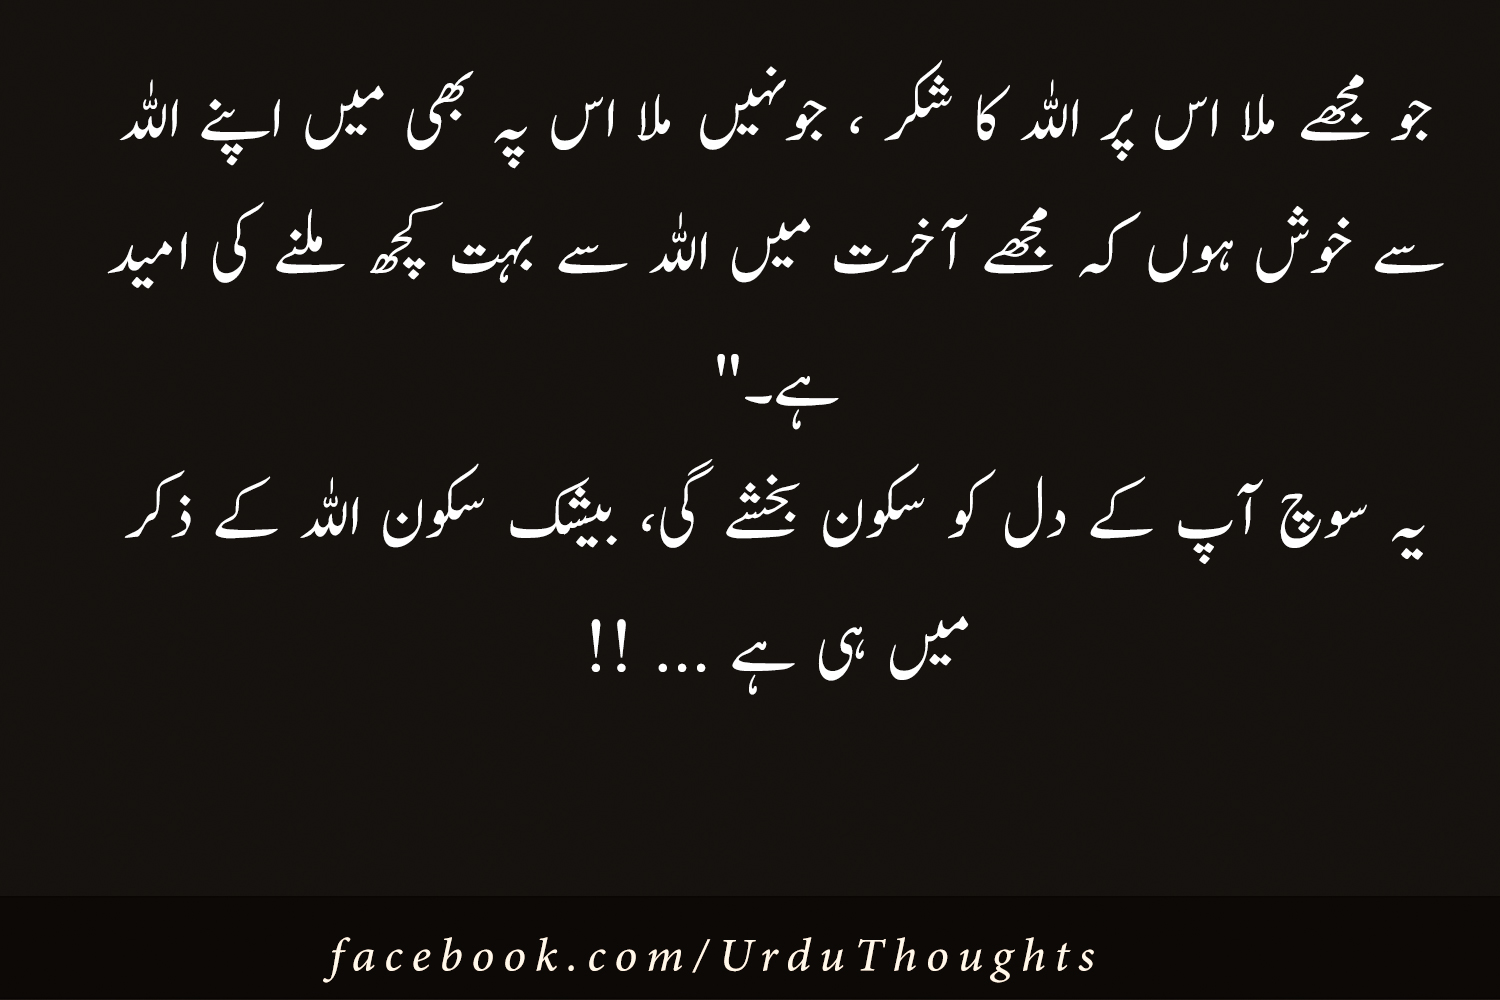 Famous Black Quotes About Life Quotes In Urdu About Life Black Background Images  Urdu Thoughts